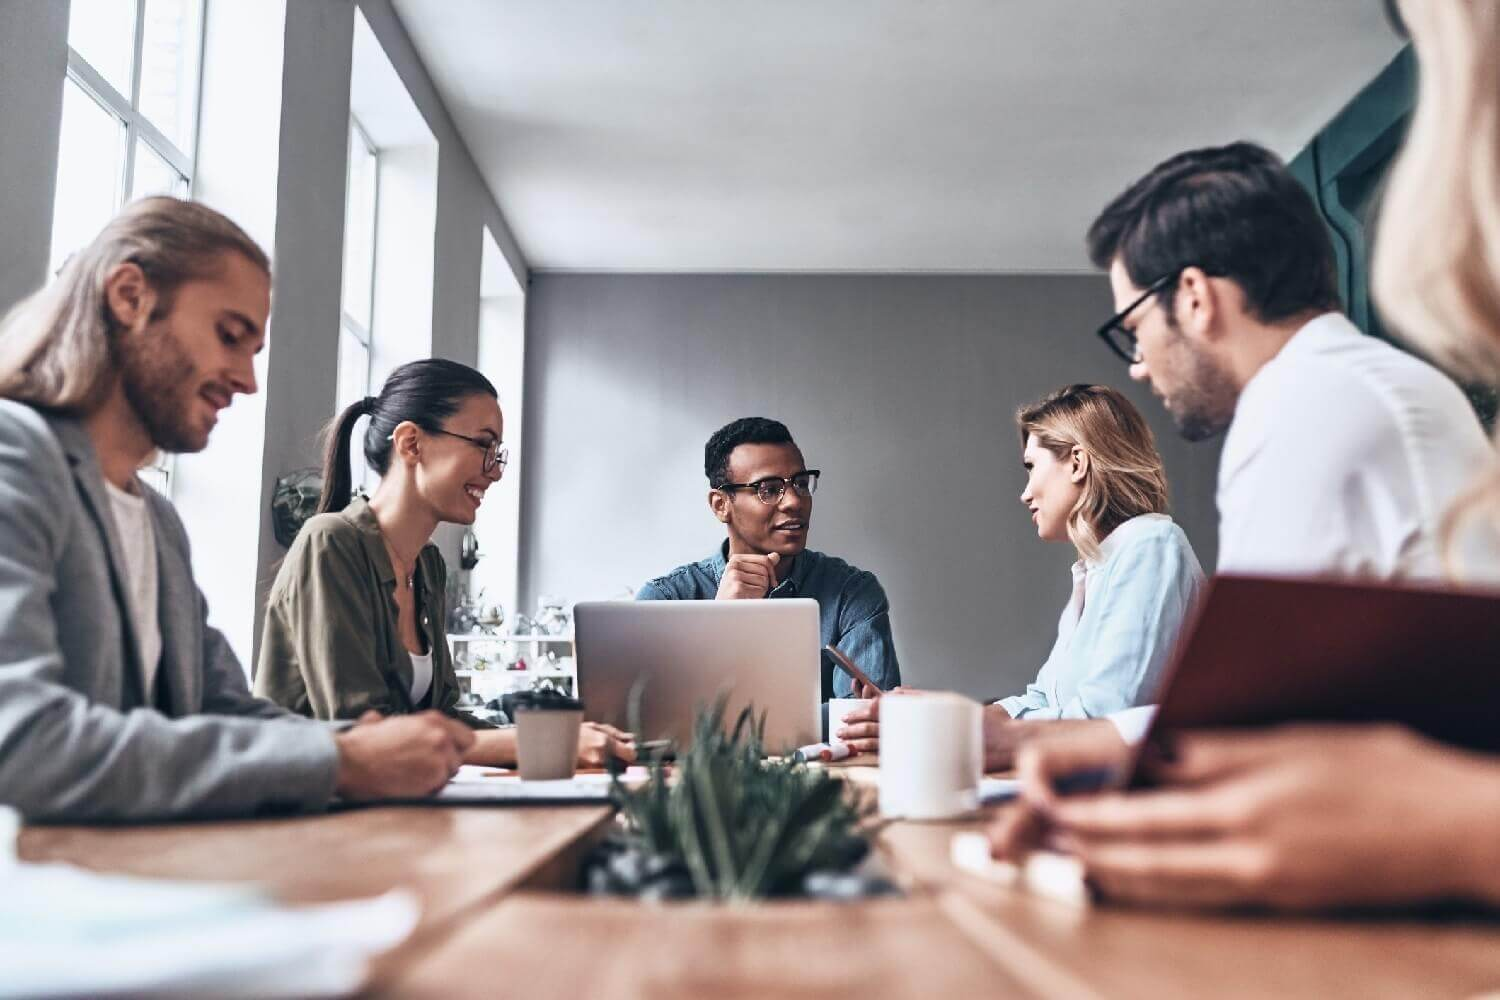 6 Best Practices to Foster Teamwork in IT Teams